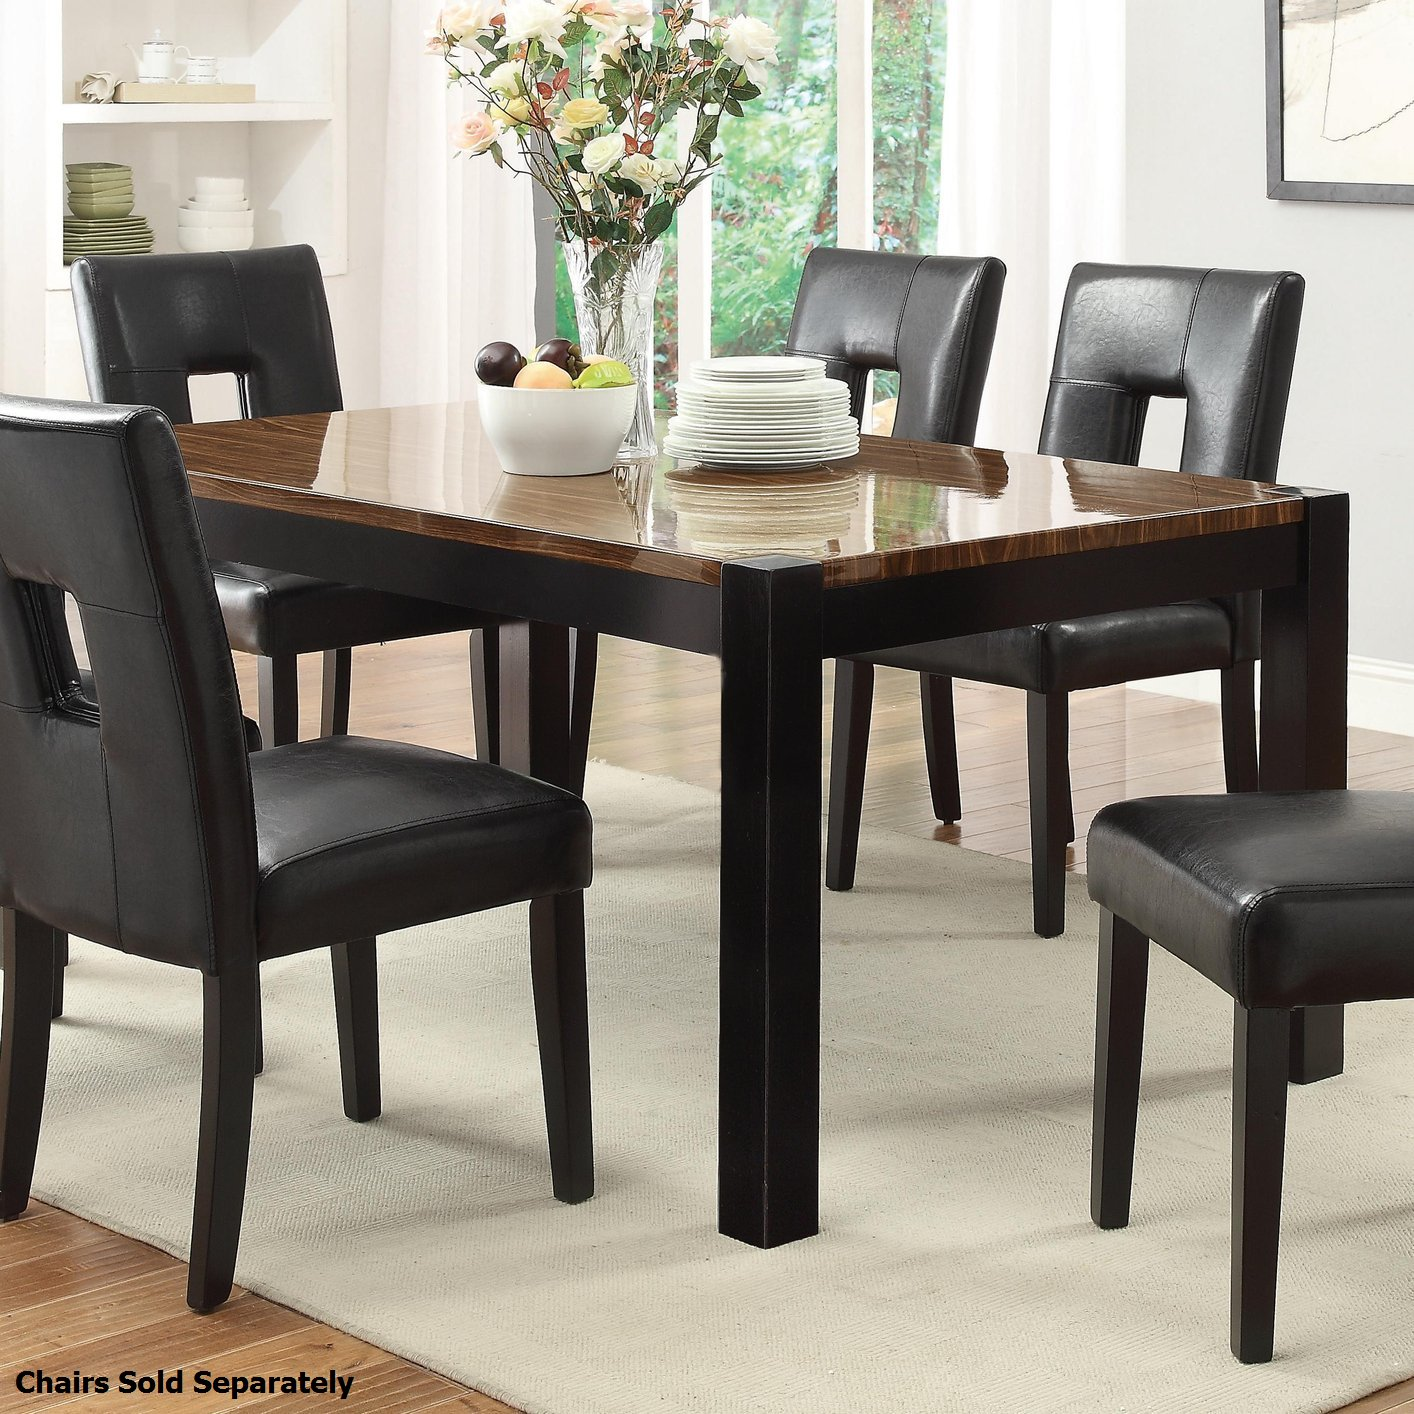 Coaster 103611 Black Wood Dining Table Steal A Sofa Furniture Outlet Los Angeles Ca